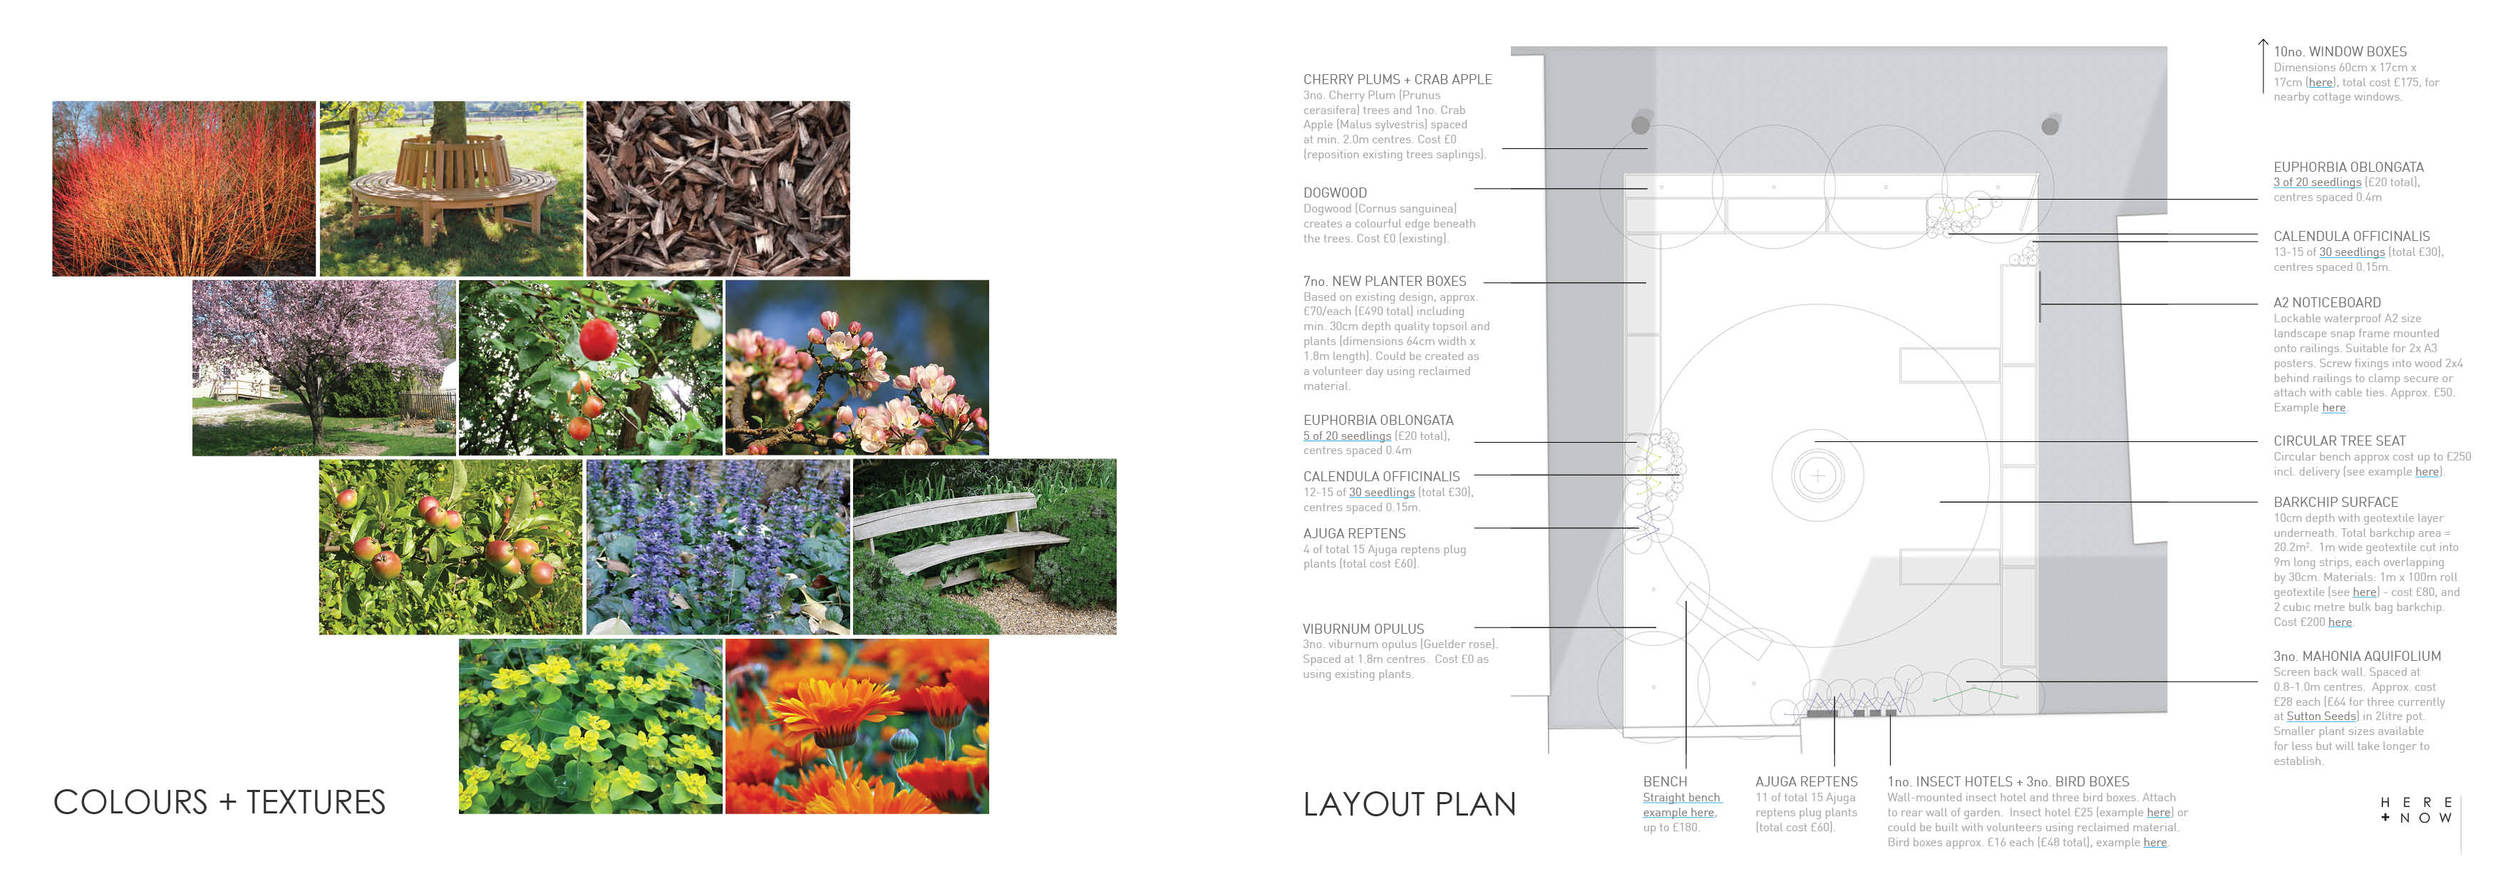 160407_HERE+NOW_Newhaven Community Garden_Proposed Layout lo res5.jpg